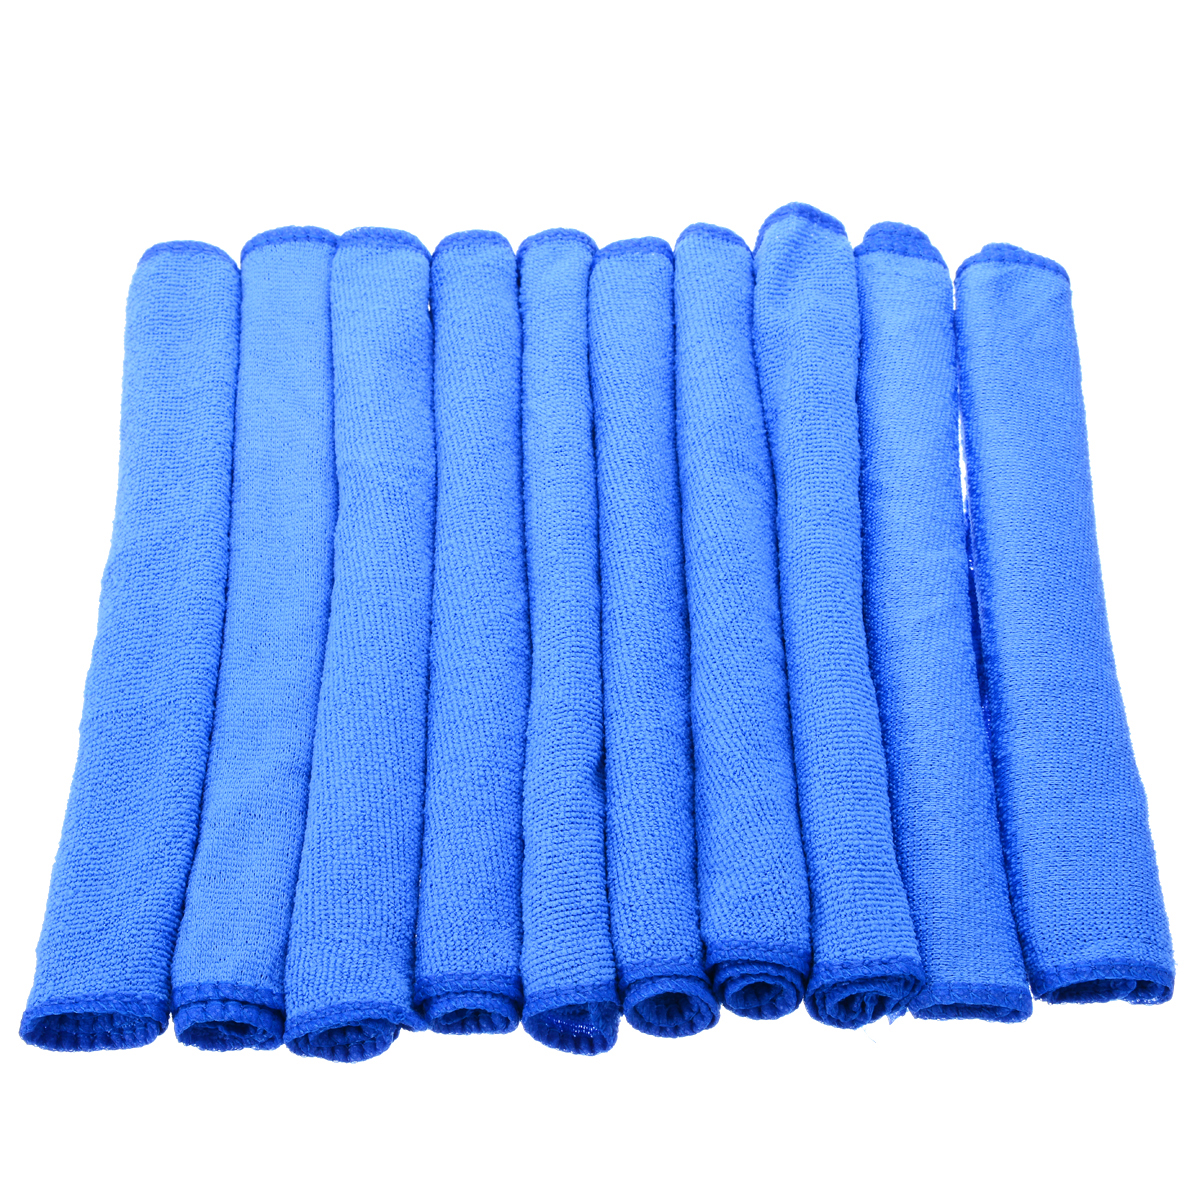 Image 5 - 10pcs Blue Microfiber Cleaning 30*30cm Auto Car Detailing Soft Microfiber Cloths Wash Towel Duster Home Cleaning Tools-in Car Washer from Automobiles & Motorcycles